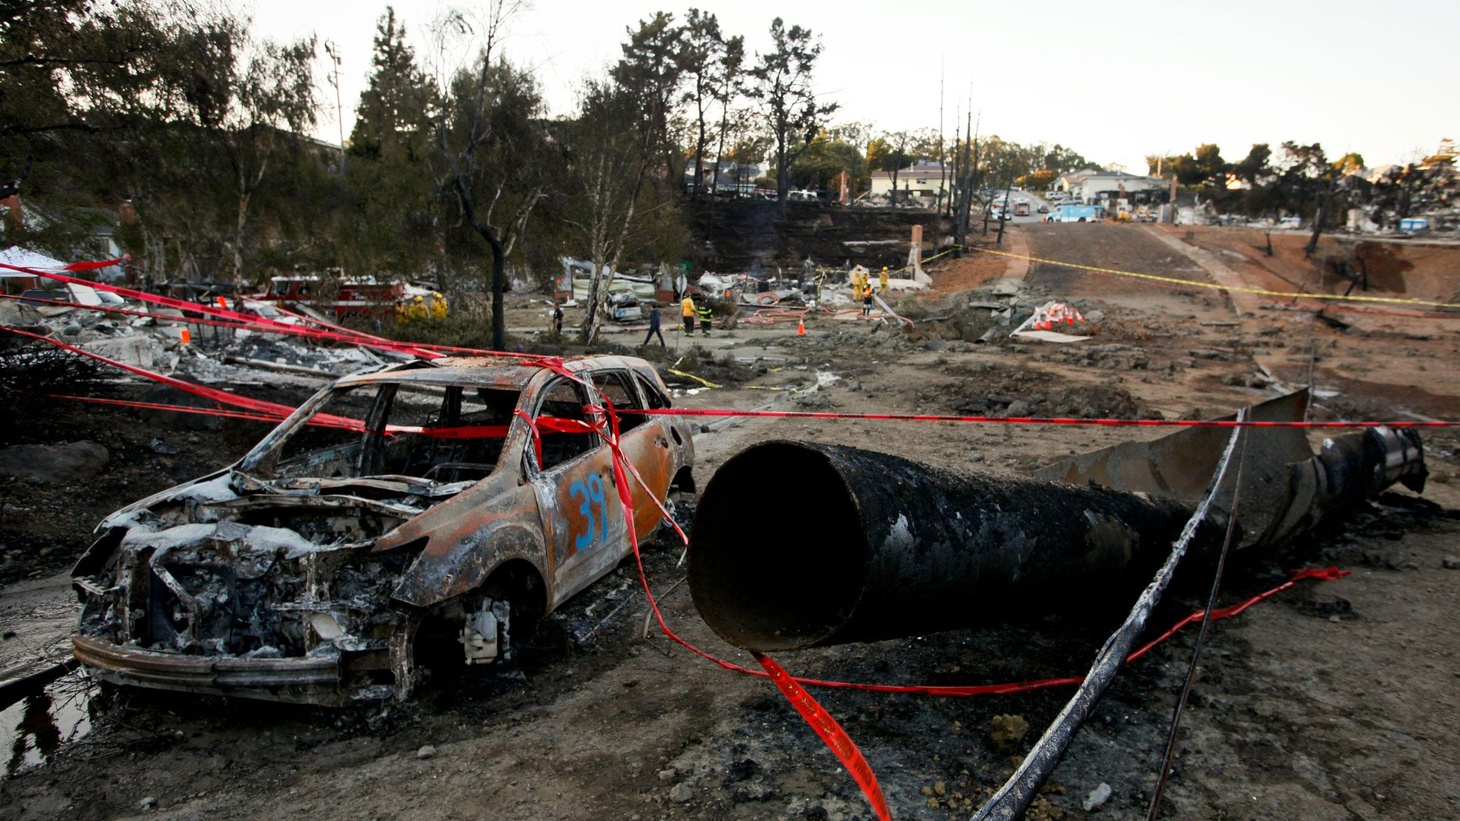 There are 2.5 million miles of natural gas pipelines in the United States, enough to circle the Earth one hundred times. Last week's deadly explosion near San Francisco raises a troubling question: are Americans living with unacceptable risk? Also, the US steps up drone attacks in Pakistan, and the Pope visits Great Britain.